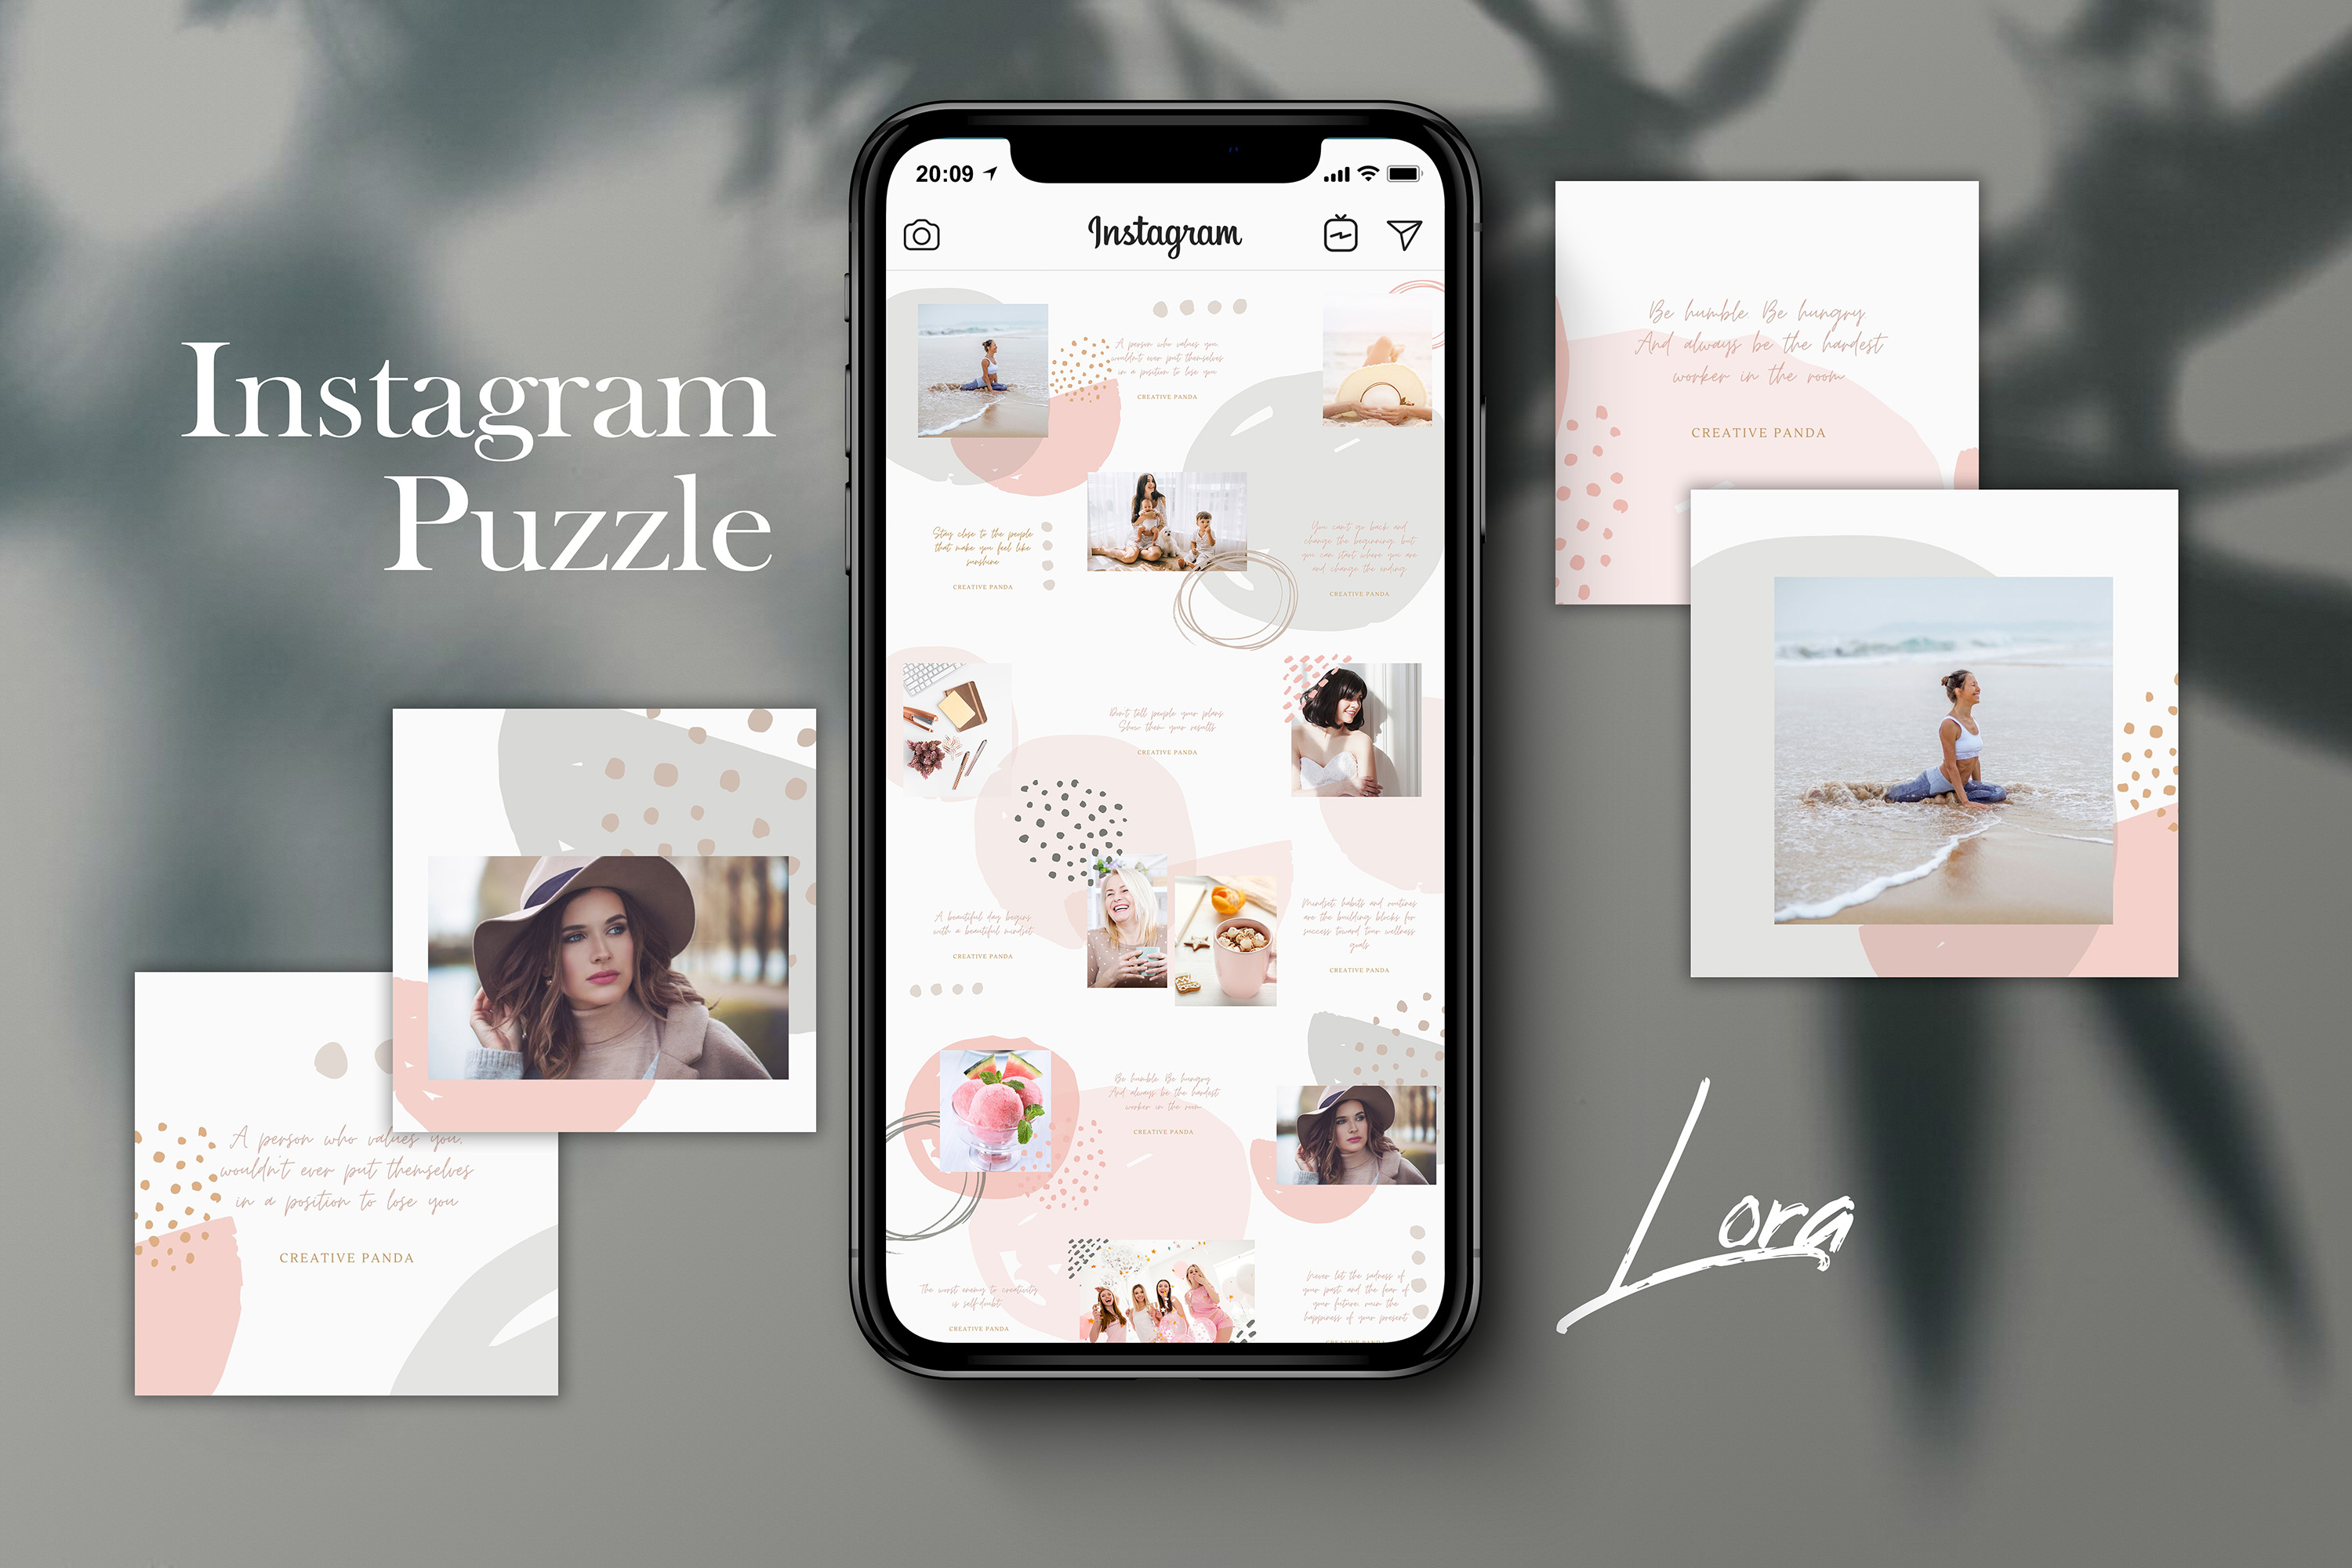 Download Free Instagram Puzzle Template Lora Graphic By Creativepanda for Cricut Explore, Silhouette and other cutting machines.